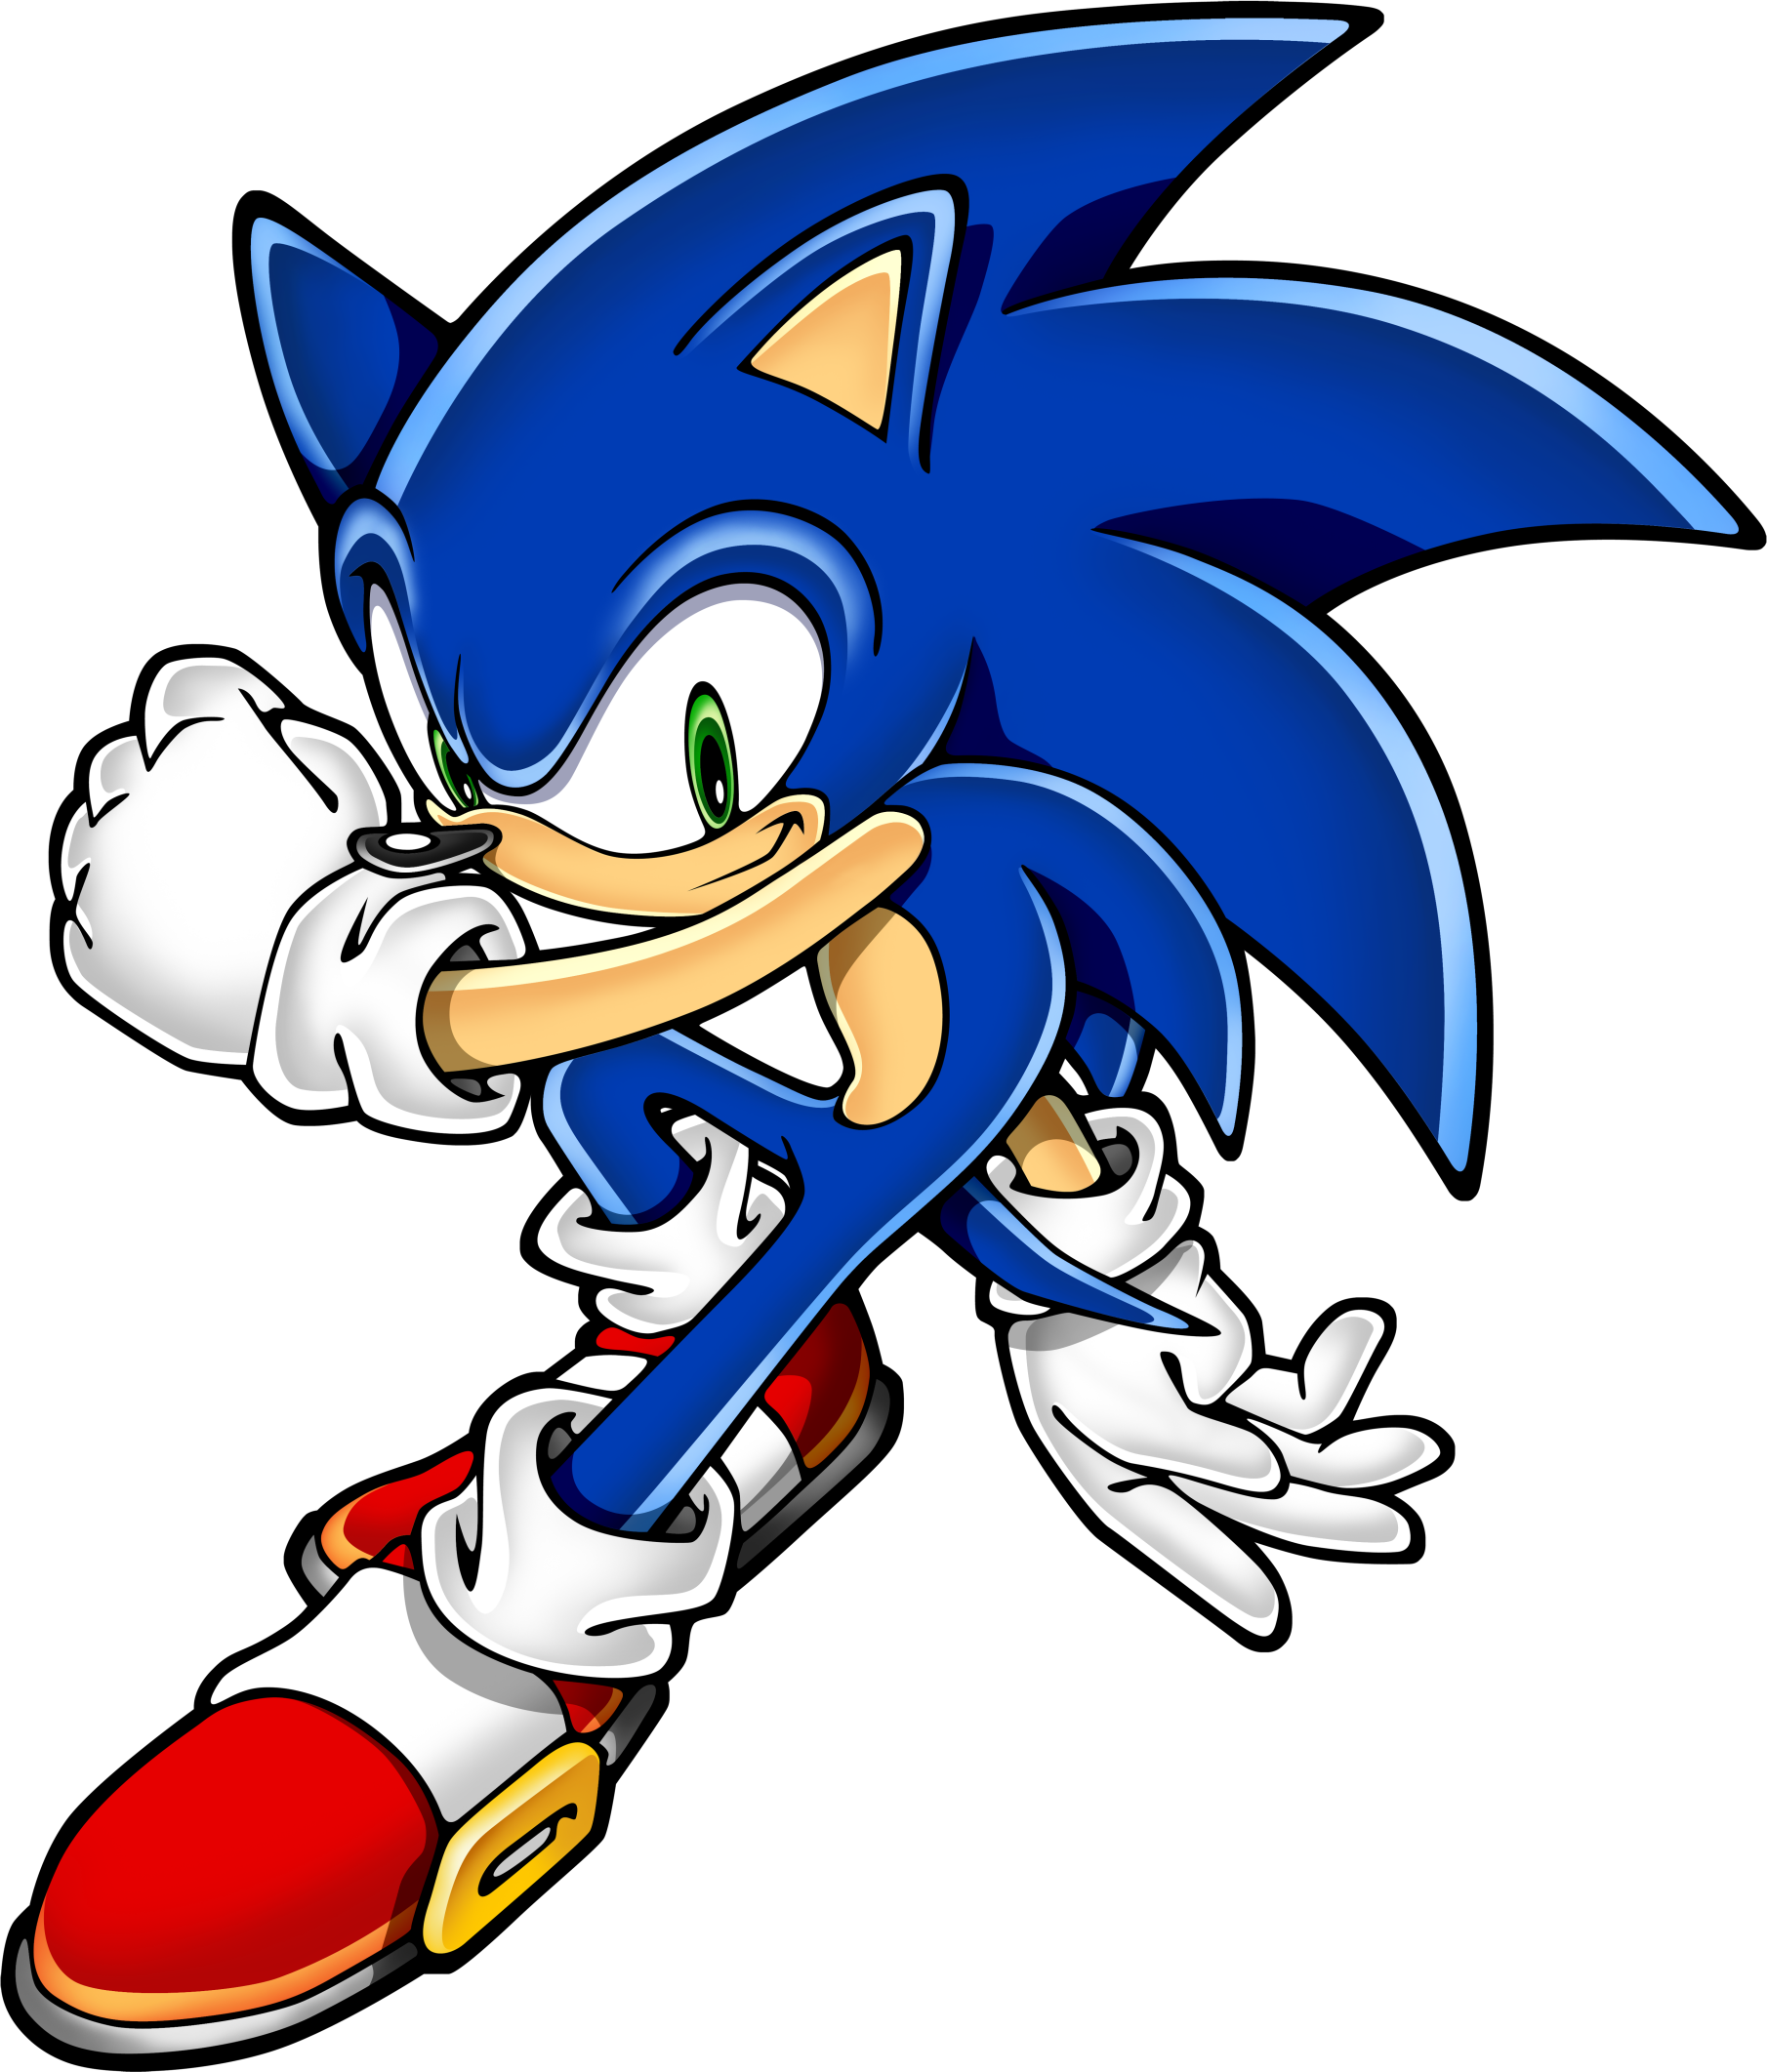 Sonic the game character. Hedgehog clipart vector